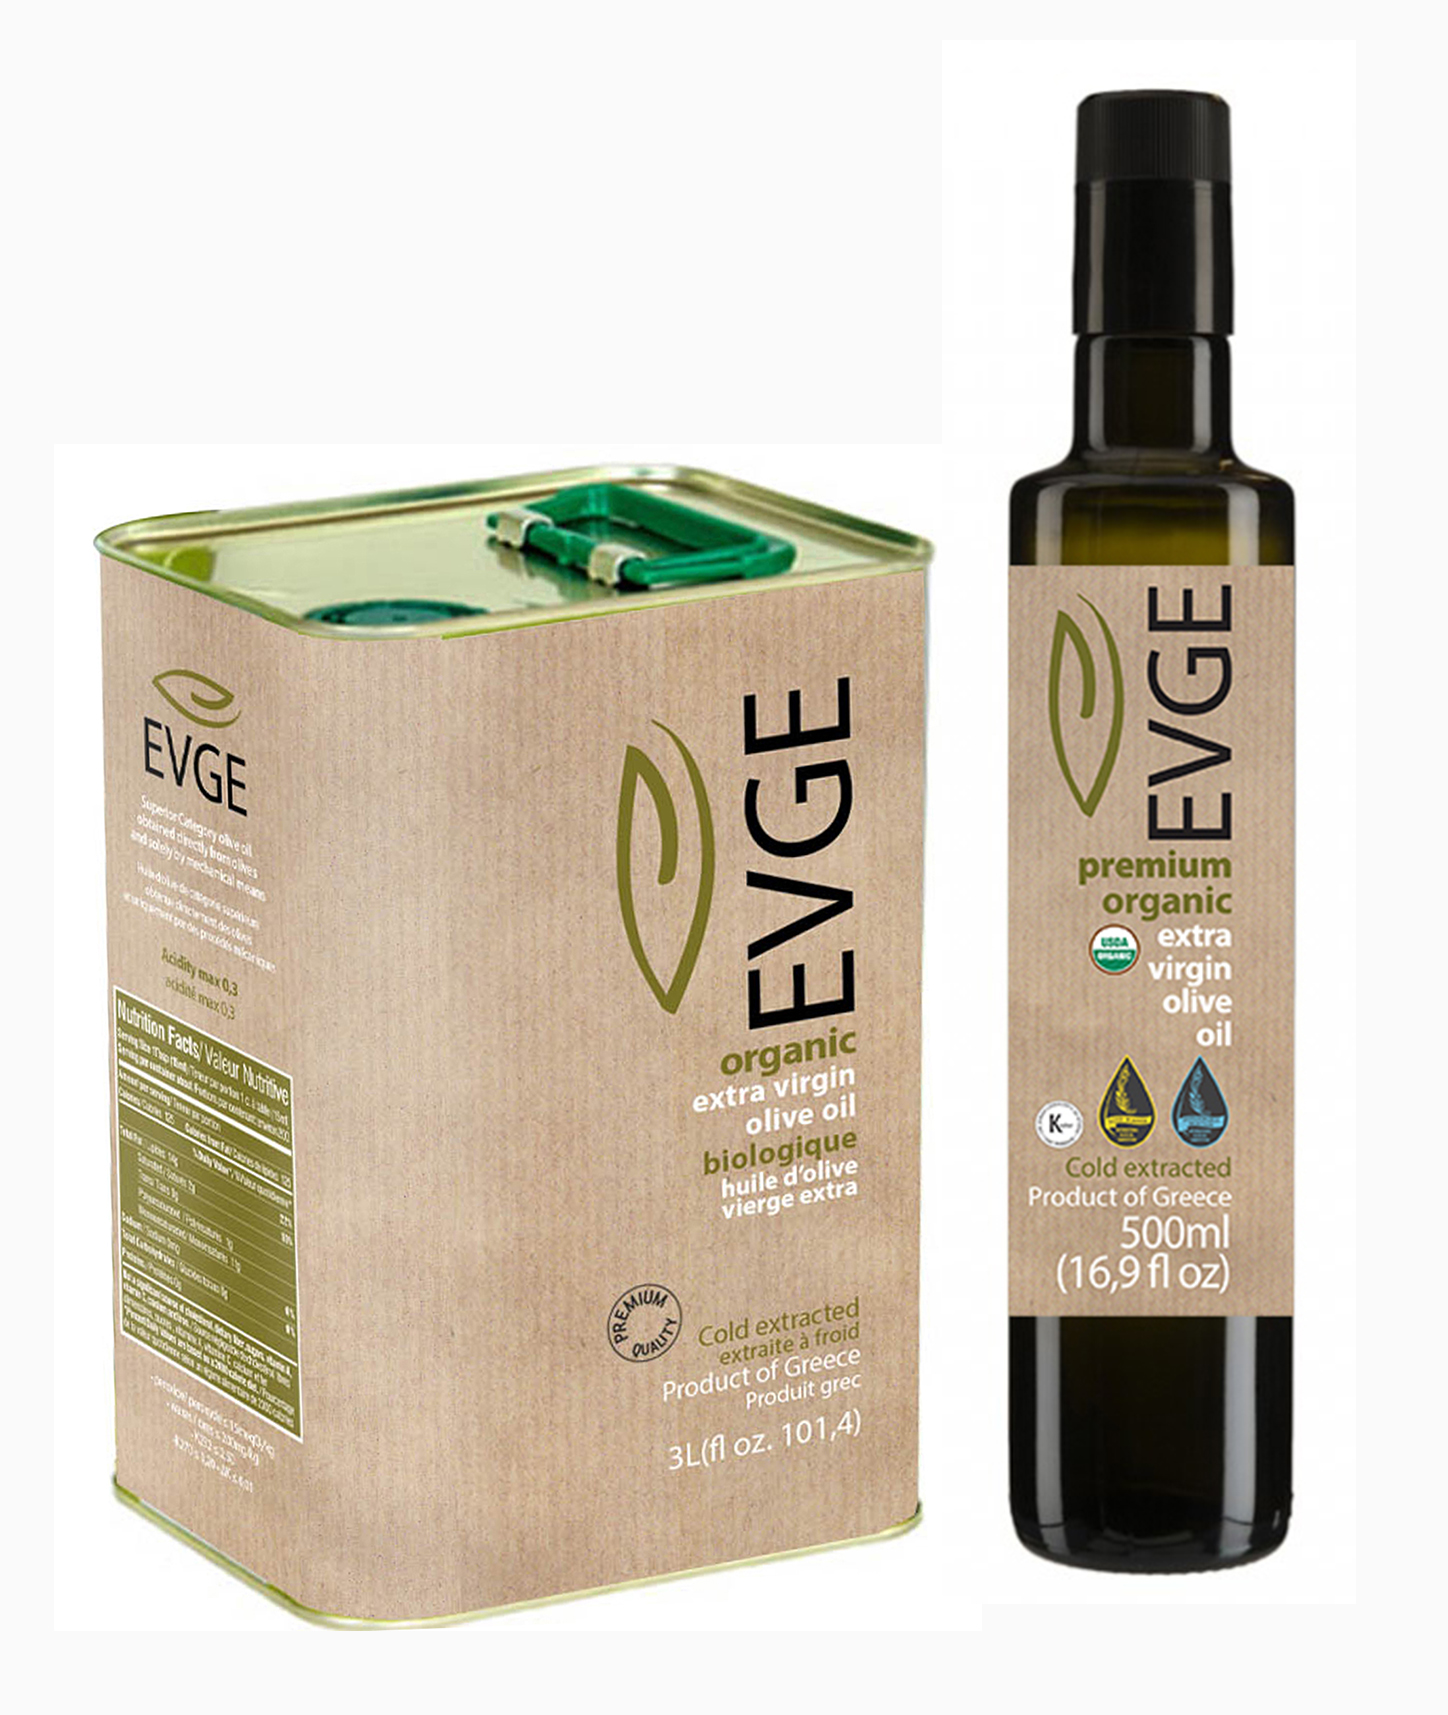 EVGE BIO EXTRA VIRGIN OLIVE OIL